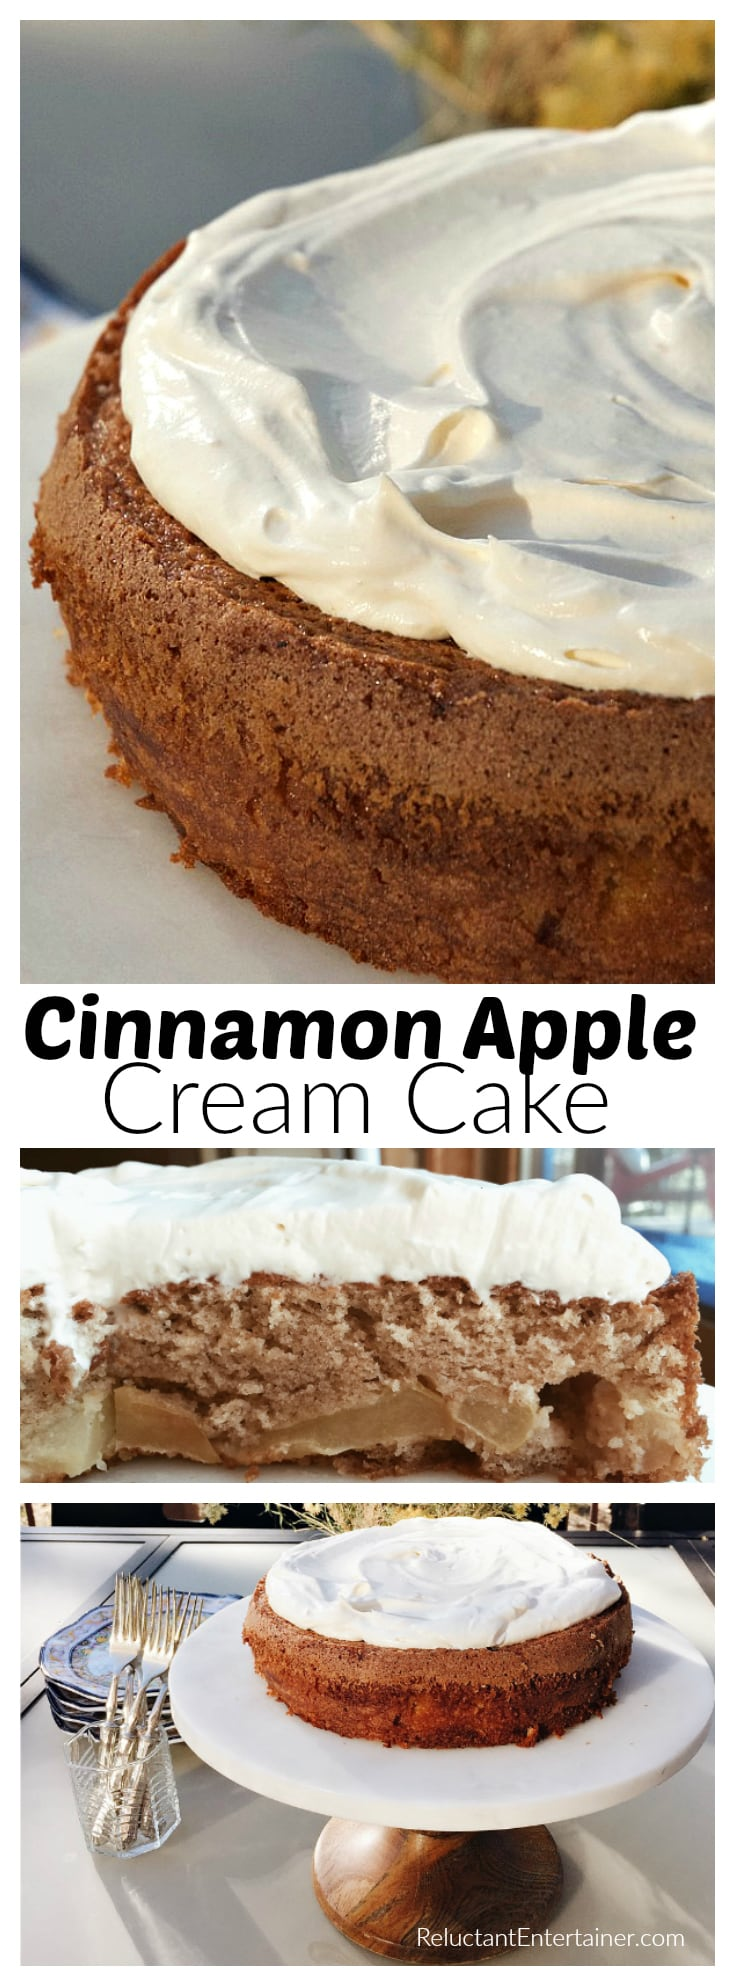 Cinnamon Apple Cream Cake, with whipped cream on top, is the perfect cake to share at a fall dinner party, or a slice with your neighbors!